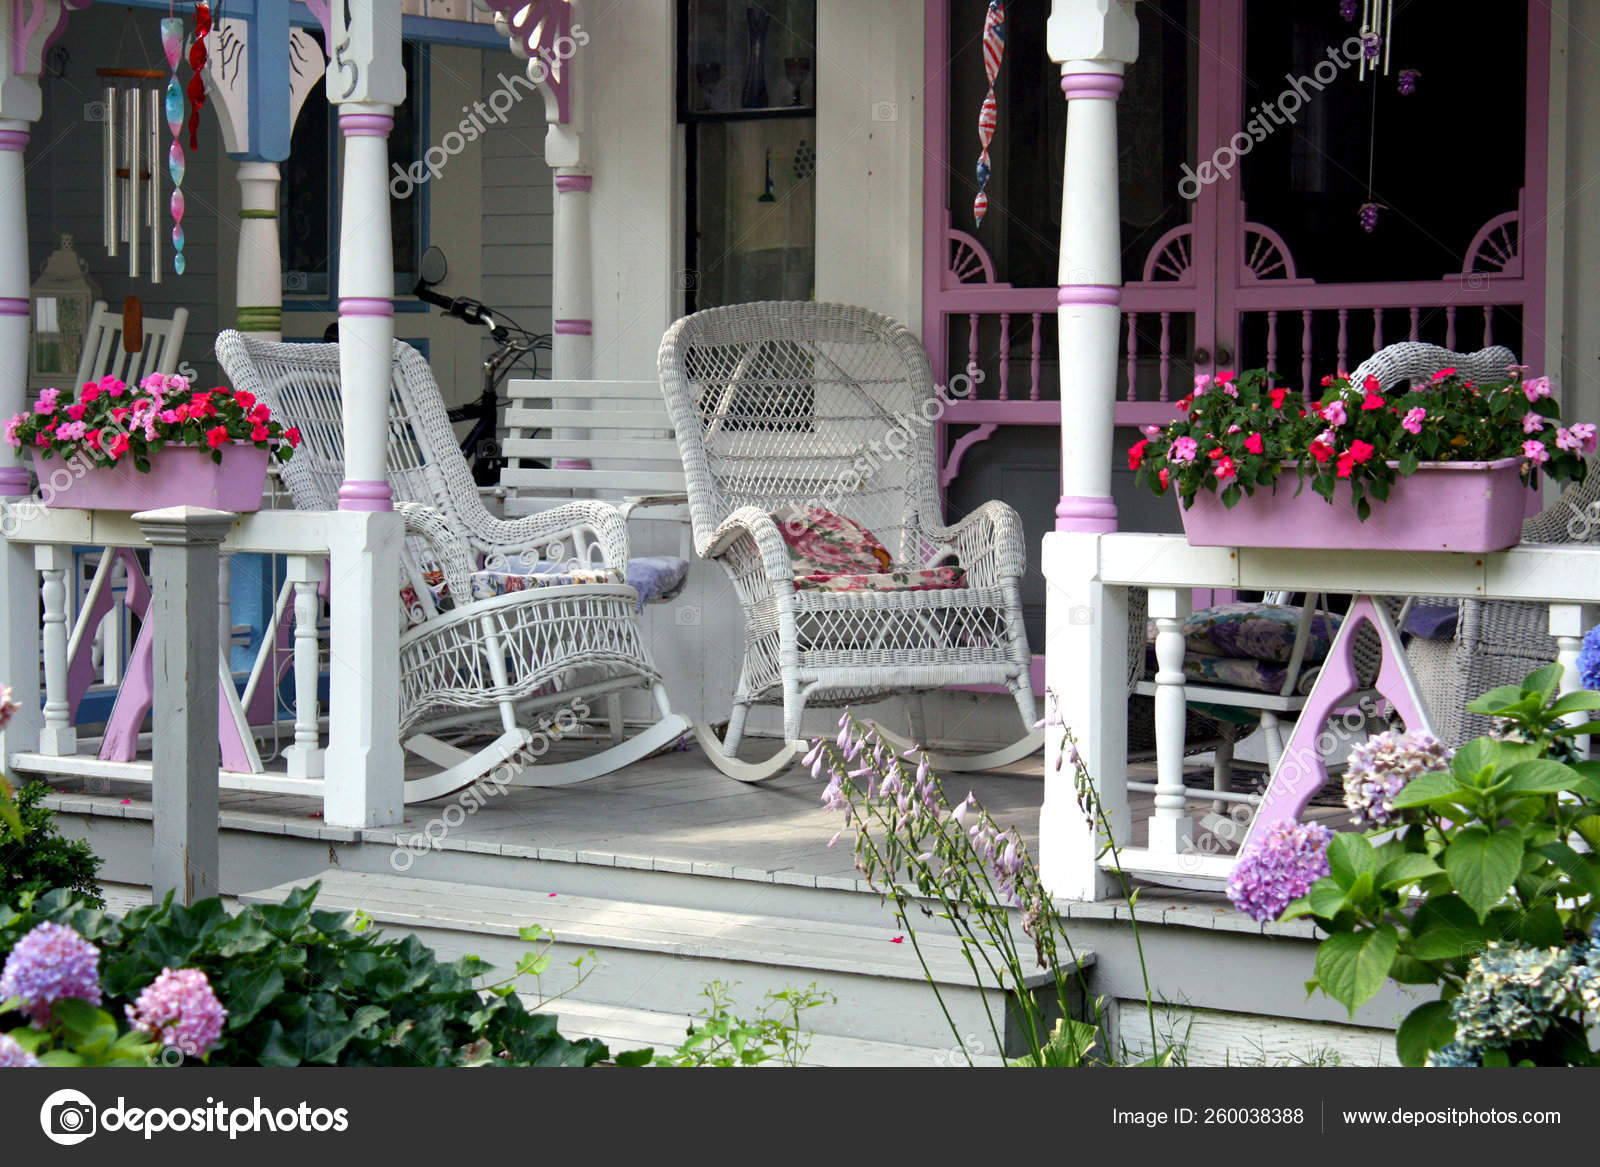 Prime Rocking Chairs Martha Vineyard Porch House Stock Photo Caraccident5 Cool Chair Designs And Ideas Caraccident5Info